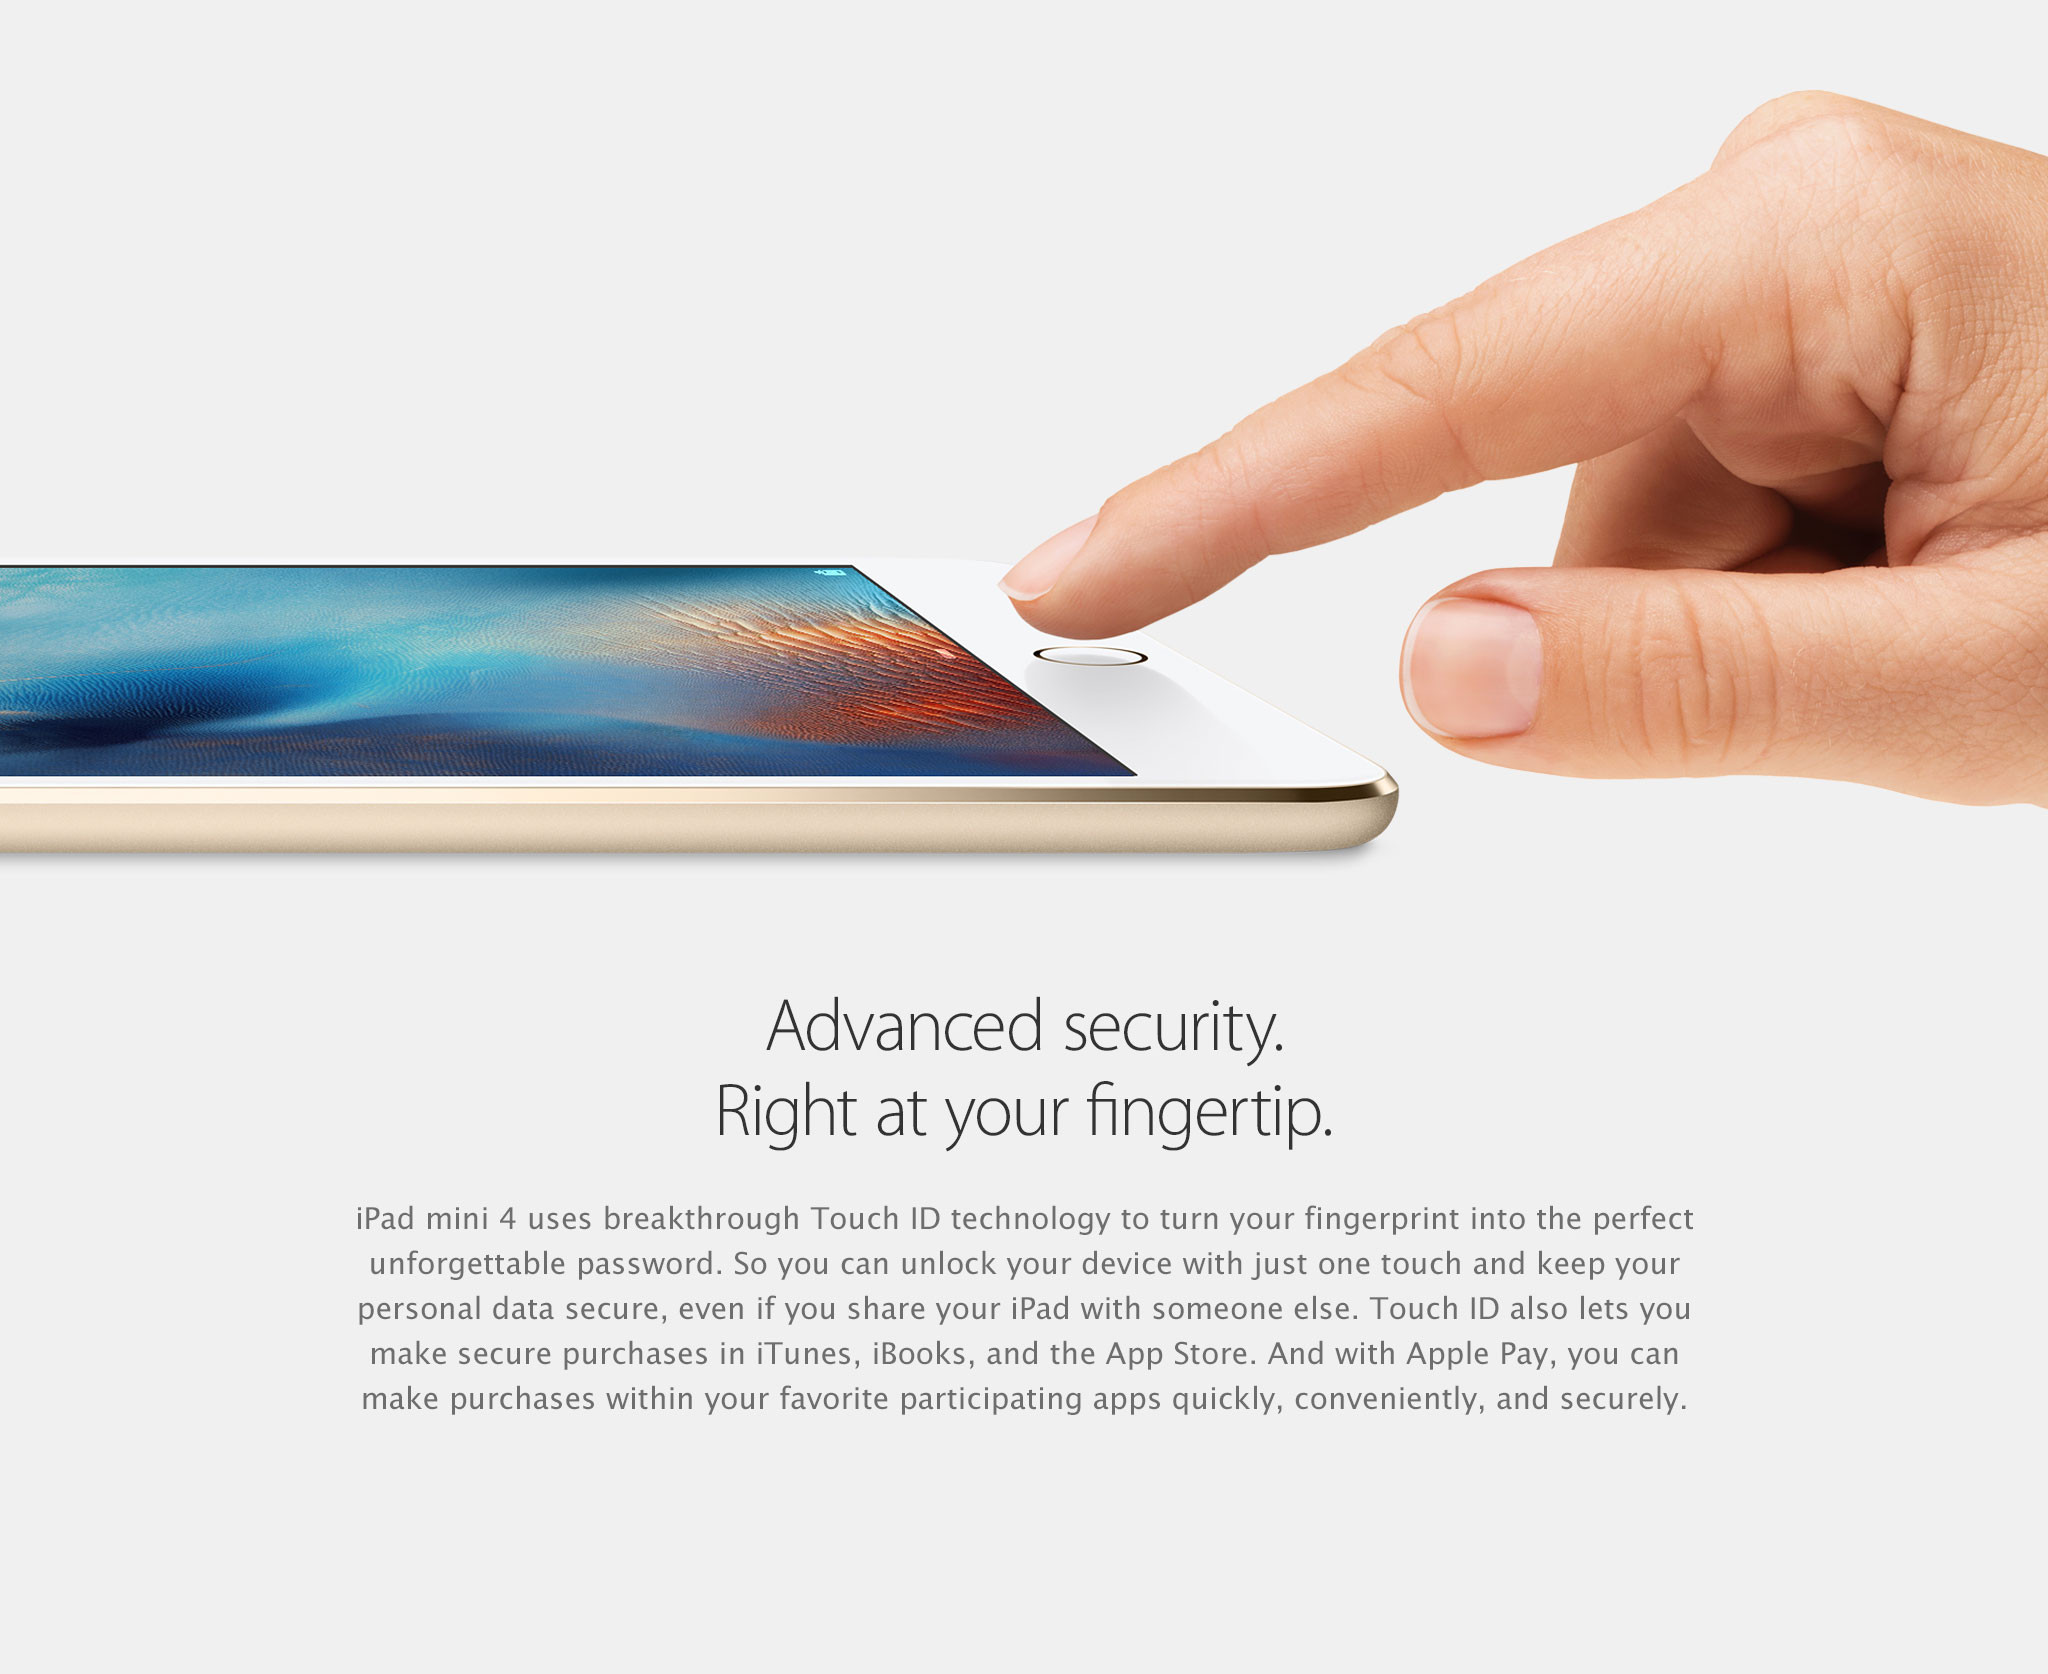 Advanced security. Right at your fingertip. iPad mini 4 uses breakthrough Touch ID technology to turn your fingerprint into the perfect unforgettable password. So you can unlock your device with just one touch and keep your personal data secure, even if you share your iPad with someone else. Touch ID also lets you make secure purchases in iTunes, iBooks, and the App Store. And with Apple Pay, you can make purchases within your favorite participating apps quickly, conveniently, and securely.